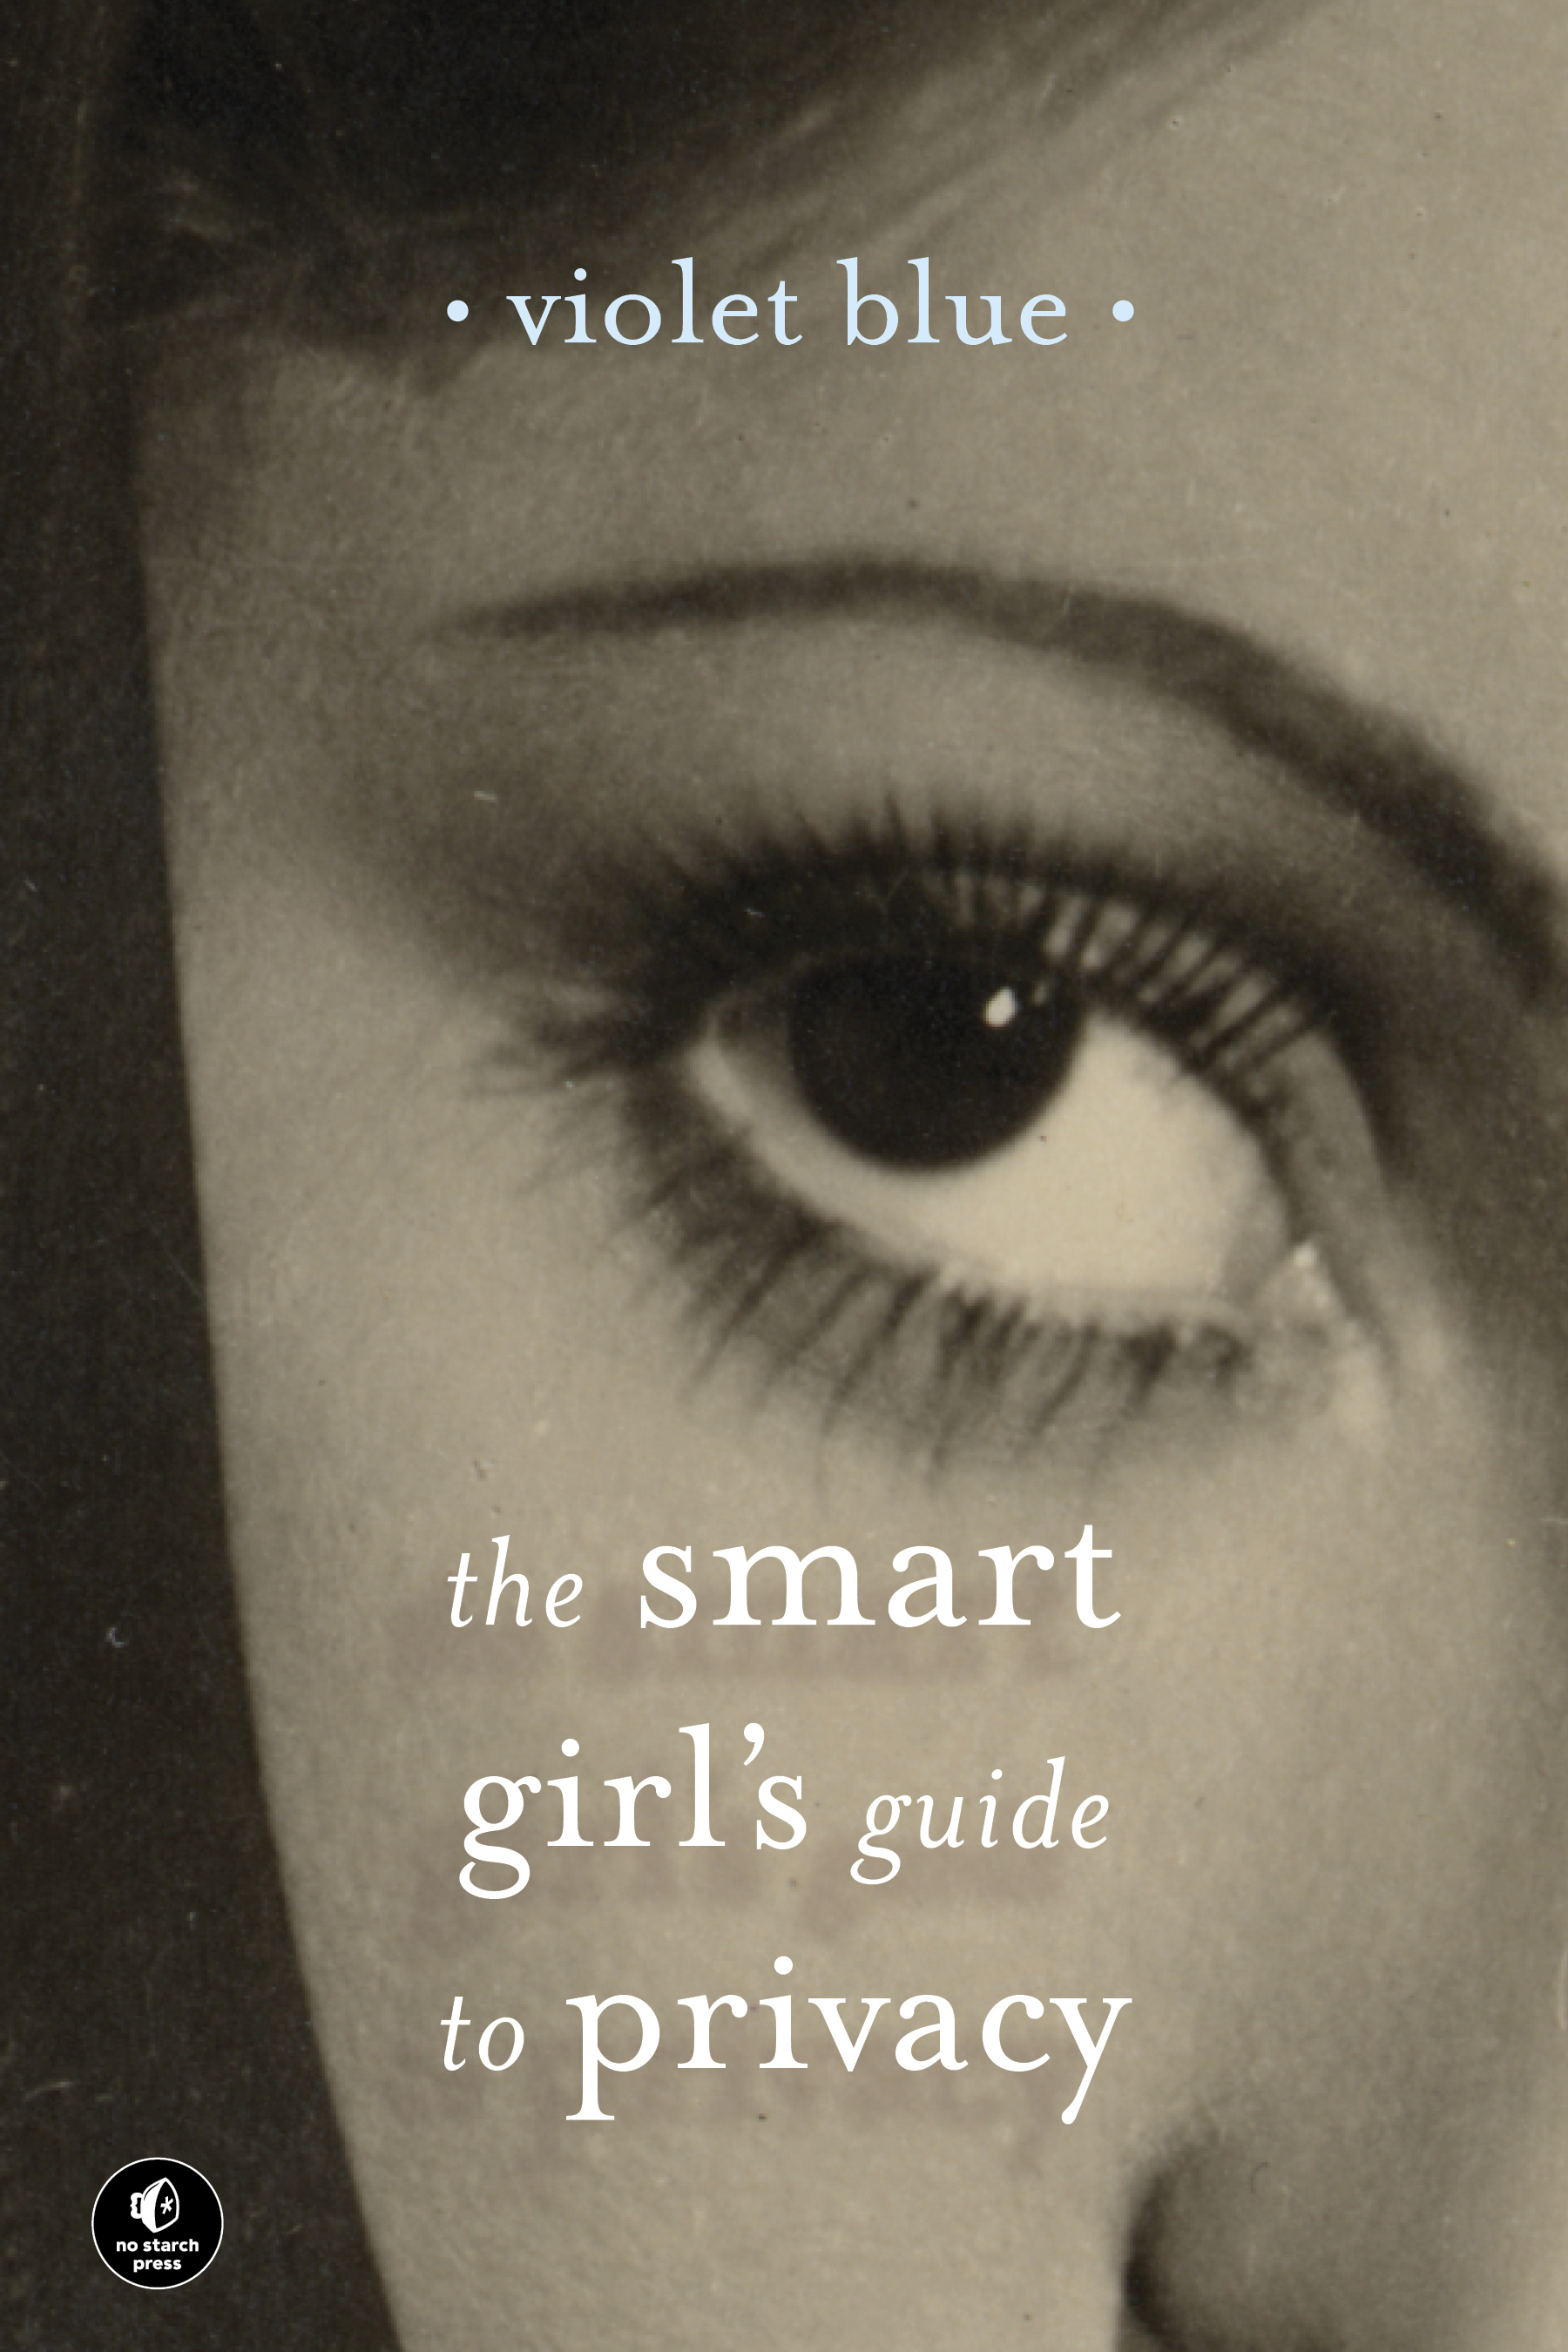 Violet Blue The Smart Girl's Guide to Privacy